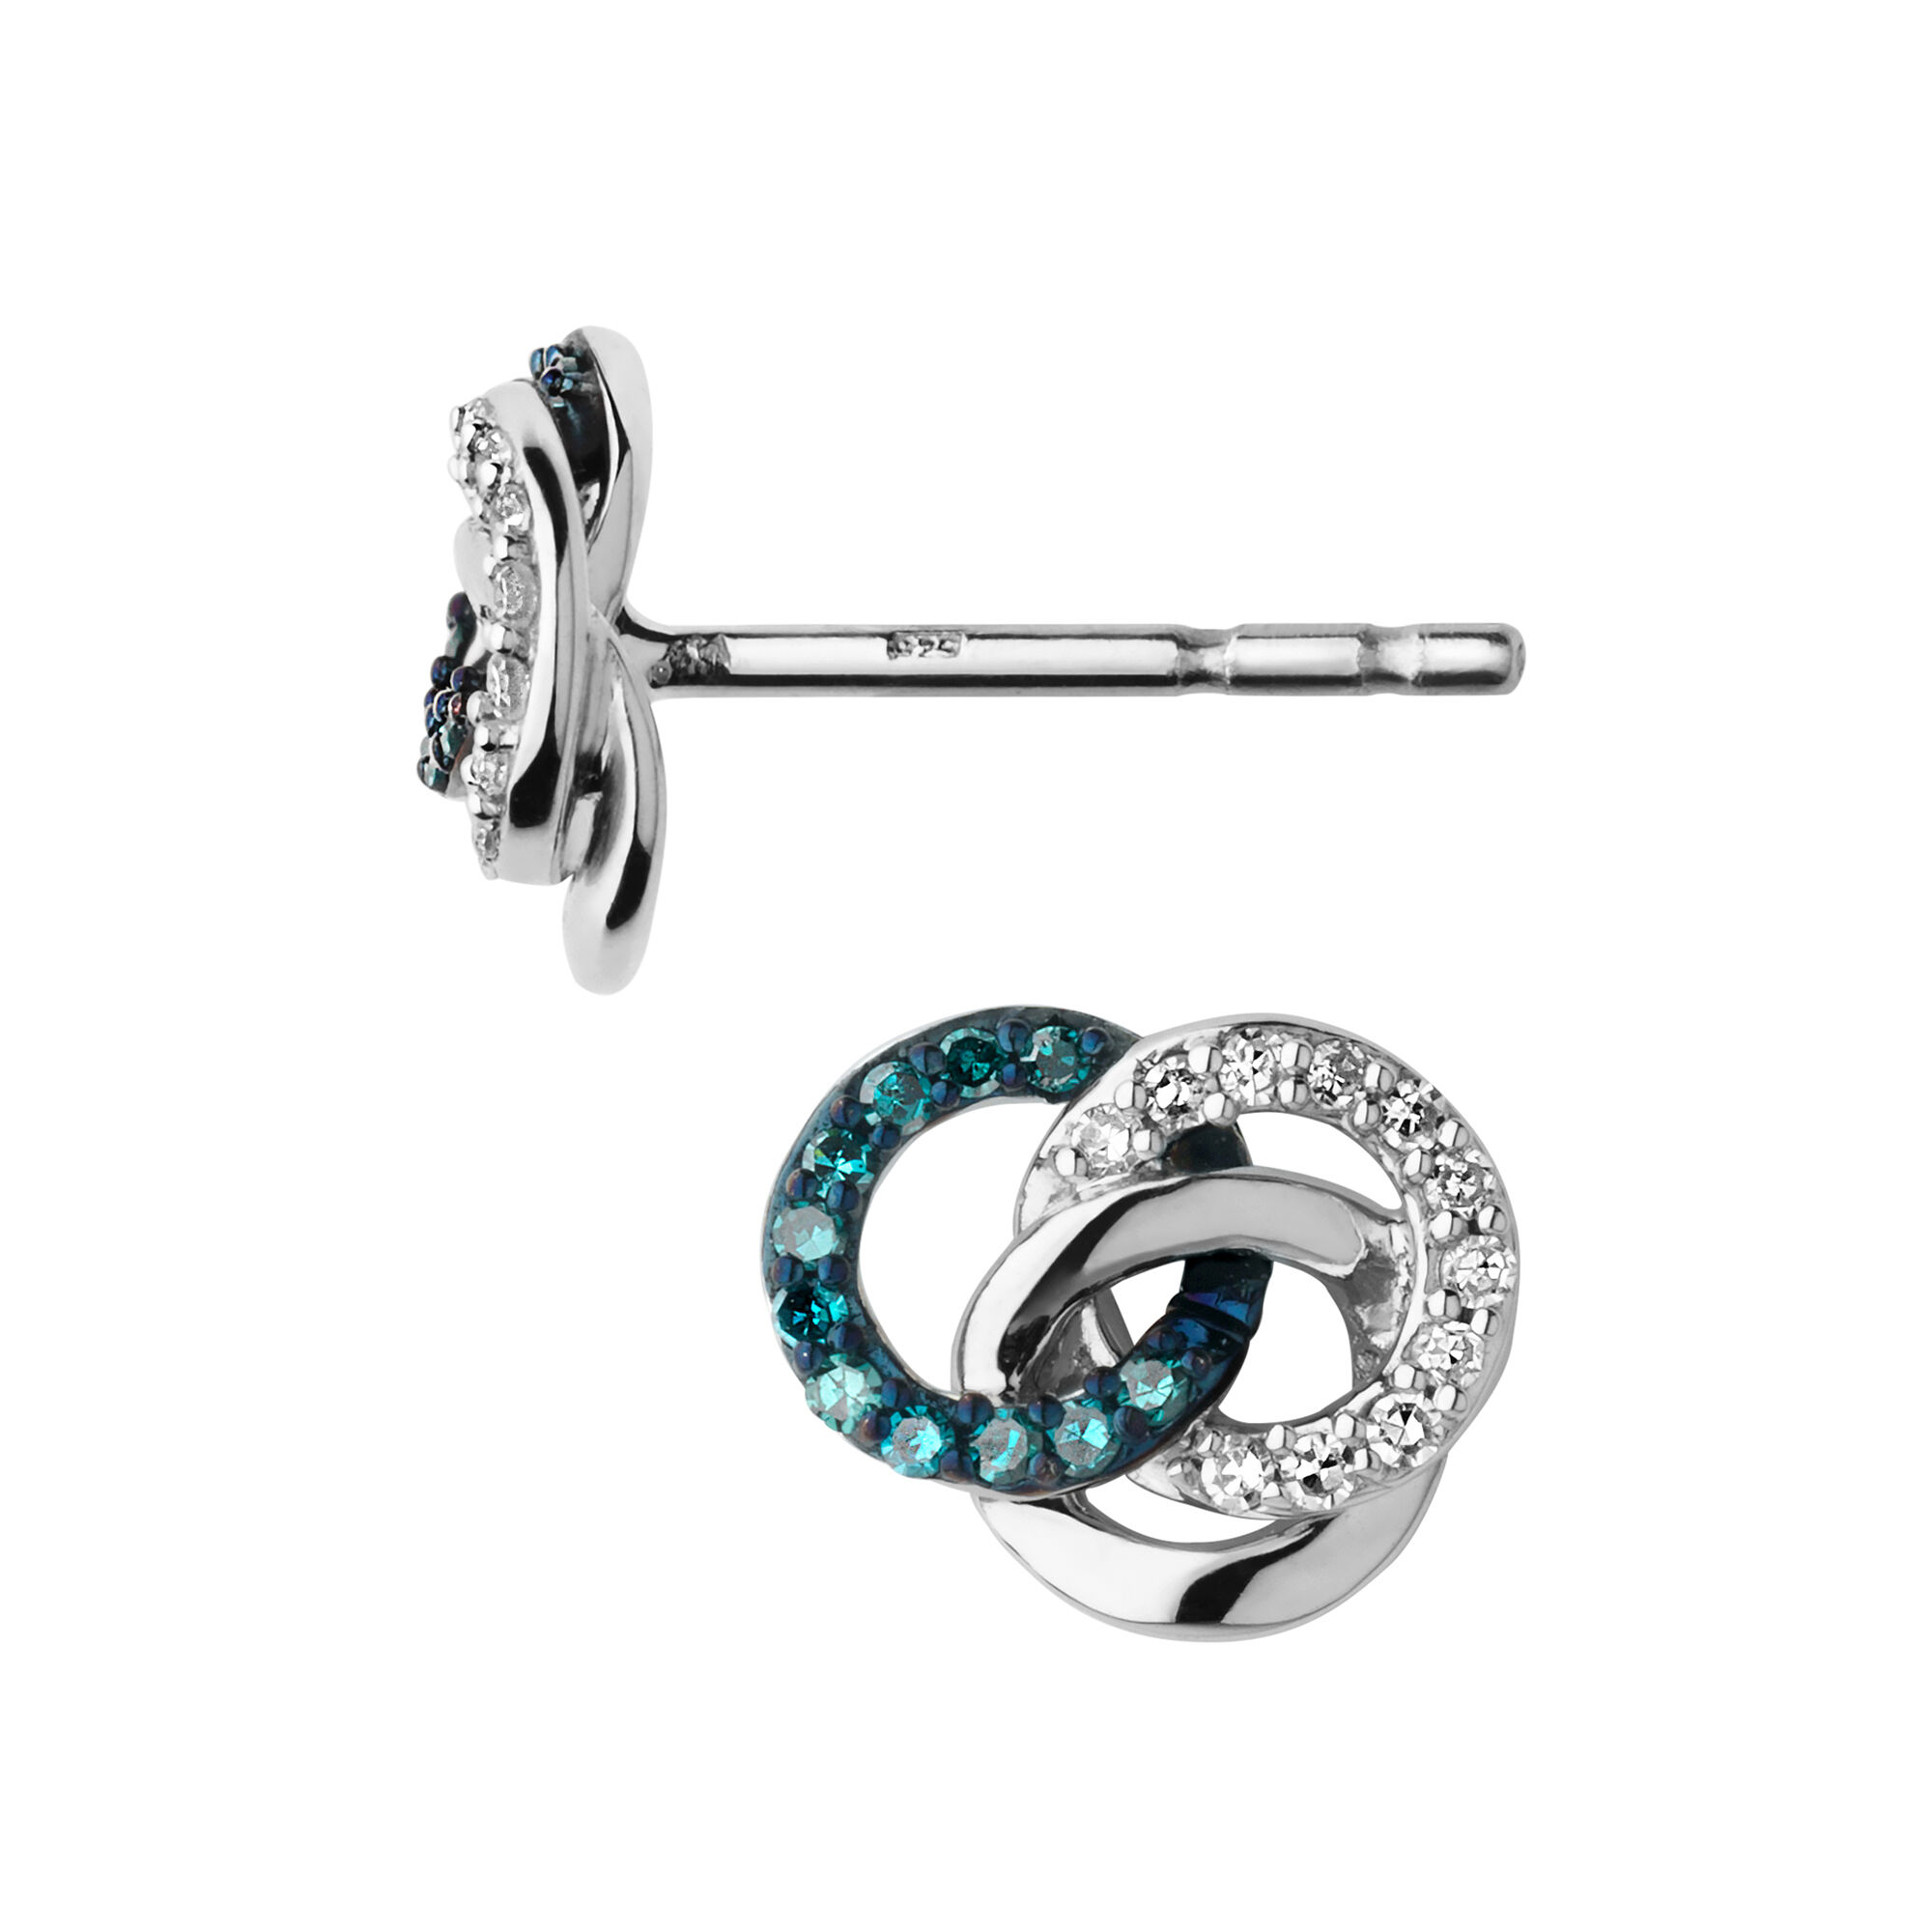 earrings essentials dimond blog guide jewelry diamond stud ritani to buying